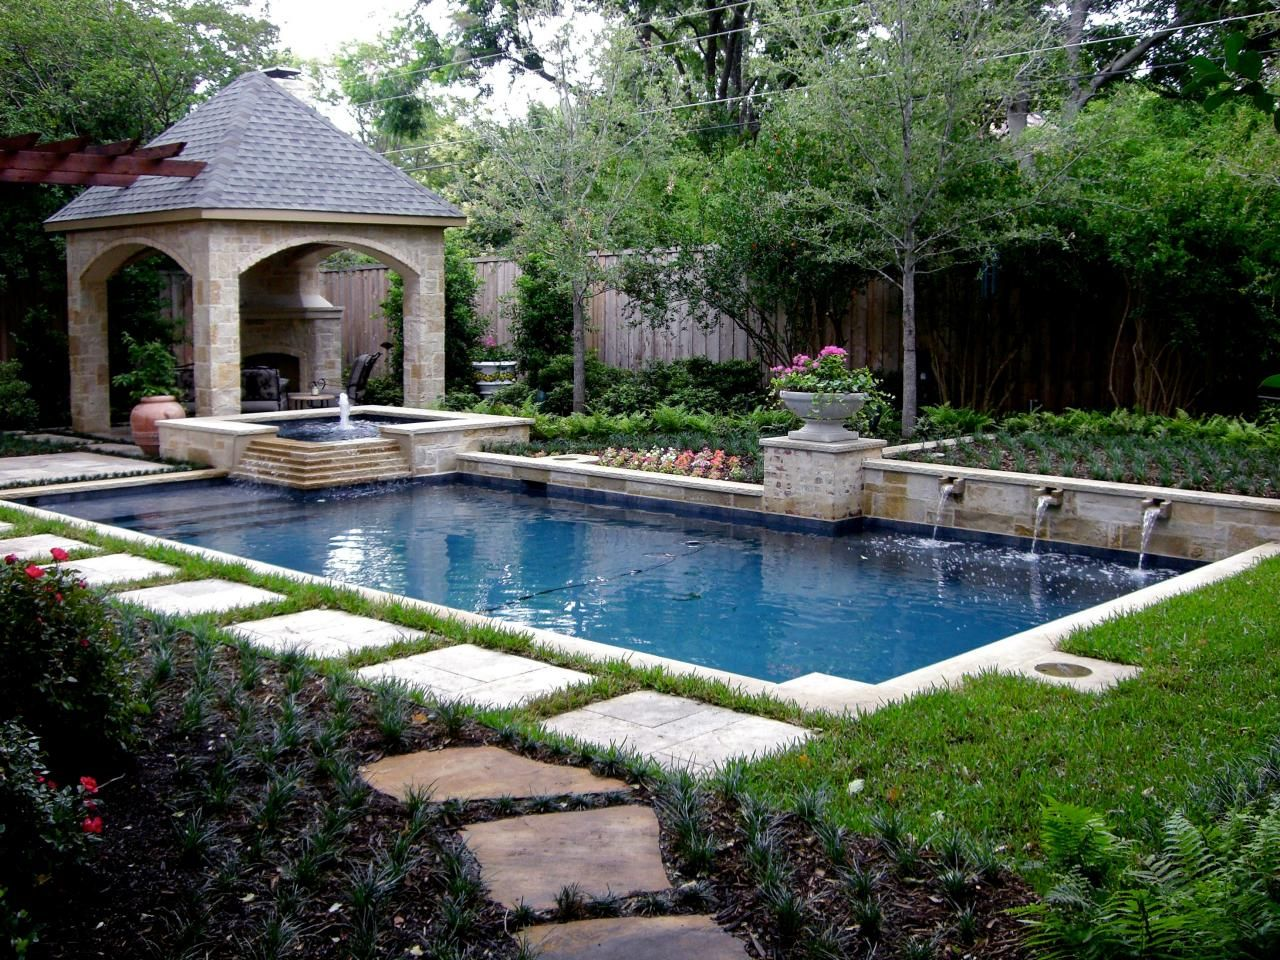 Rectangular Pool Landscape Designs dive into luxury with this large rectangular swimming pool and its